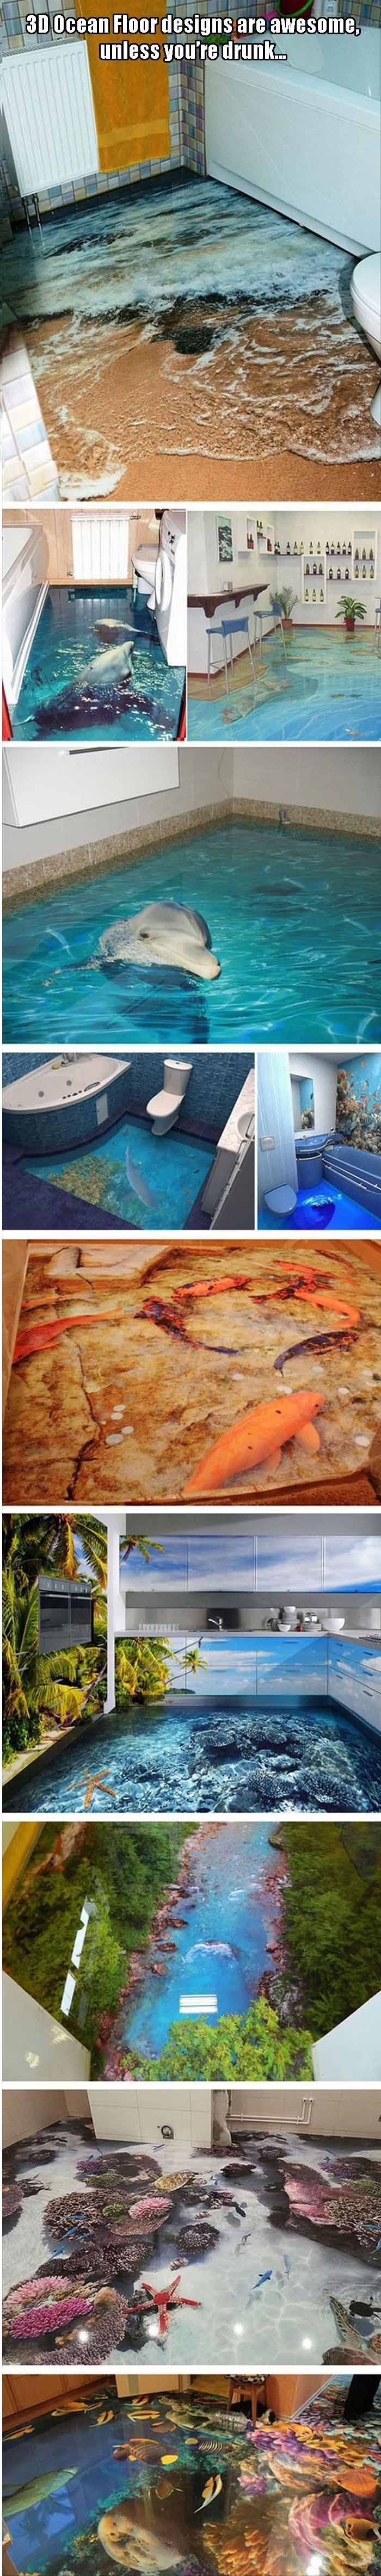 3D Ocean Floor Designs Are Awesome Unless Youre Drunk 10 Pics